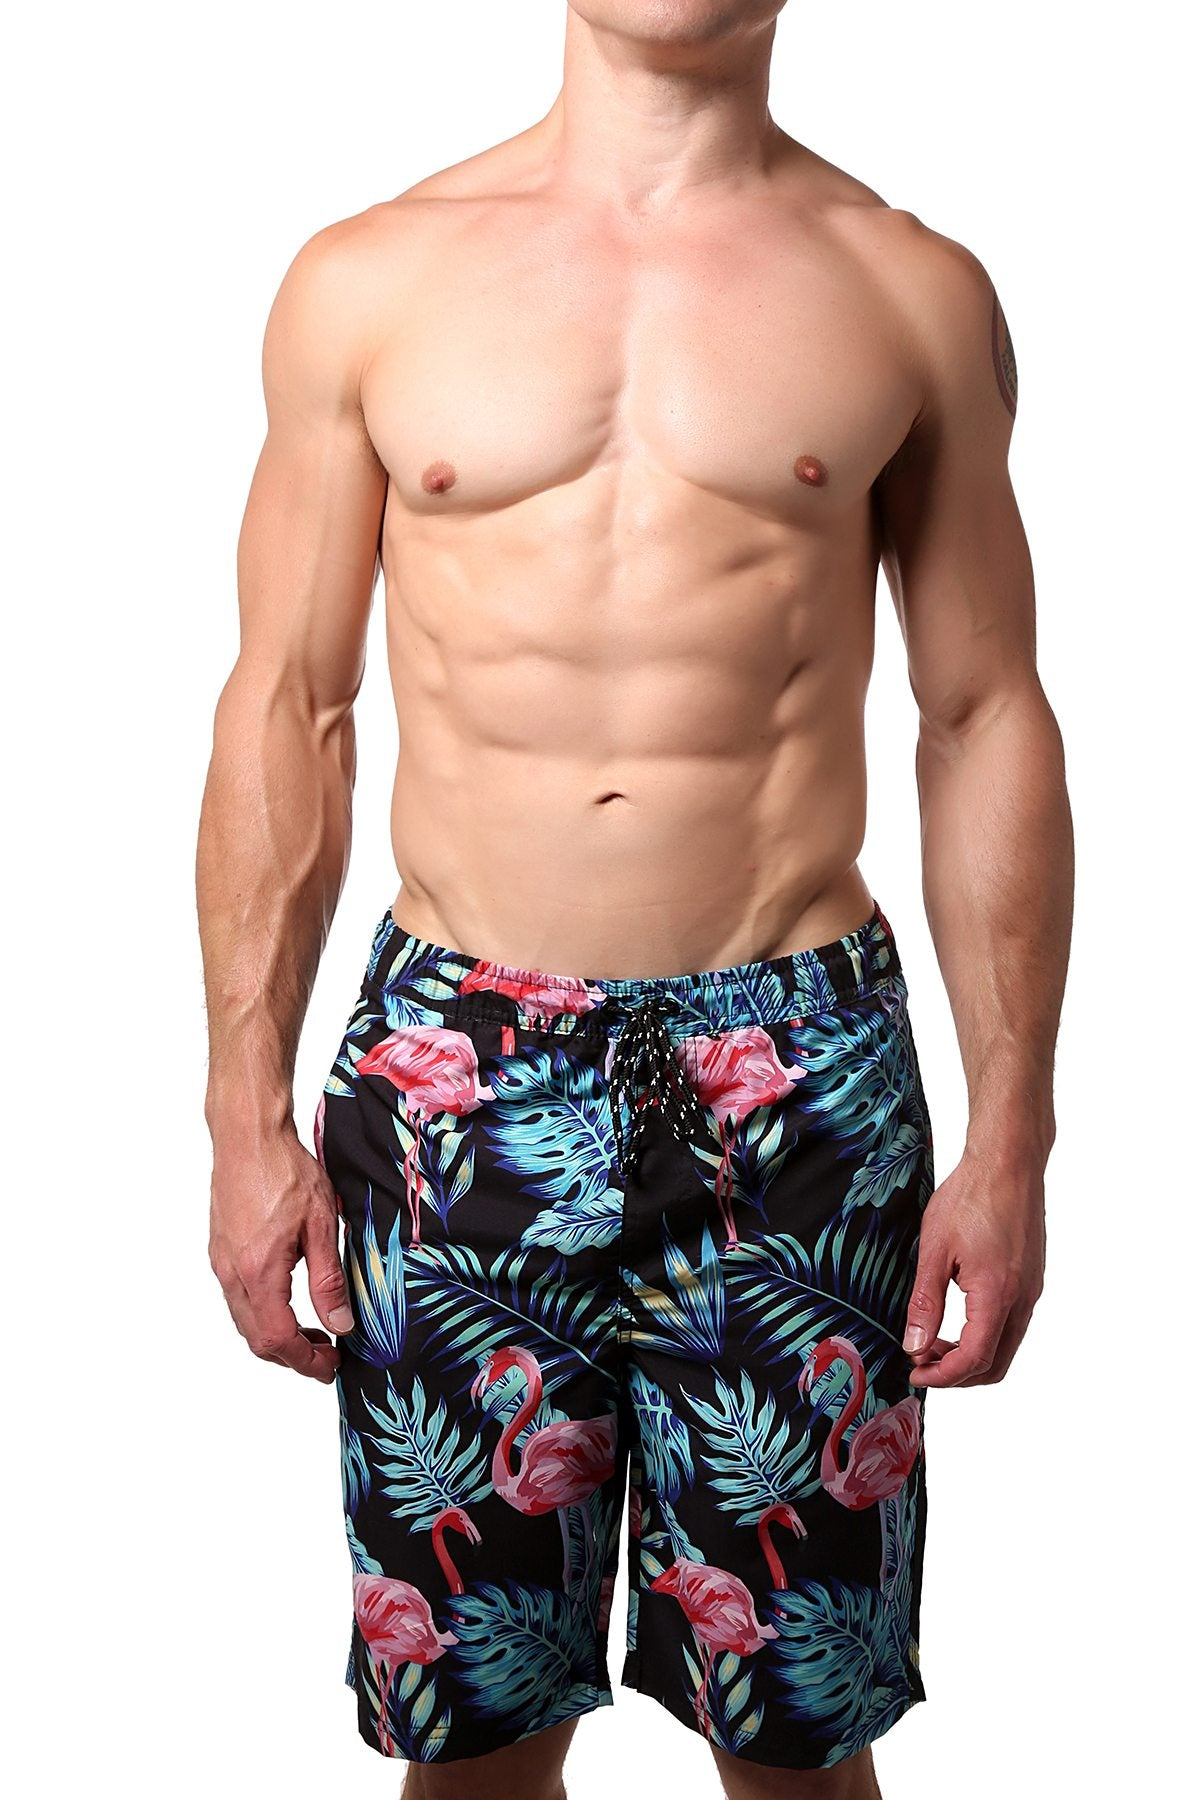 Distortion Black Flamingo Print Swim Short